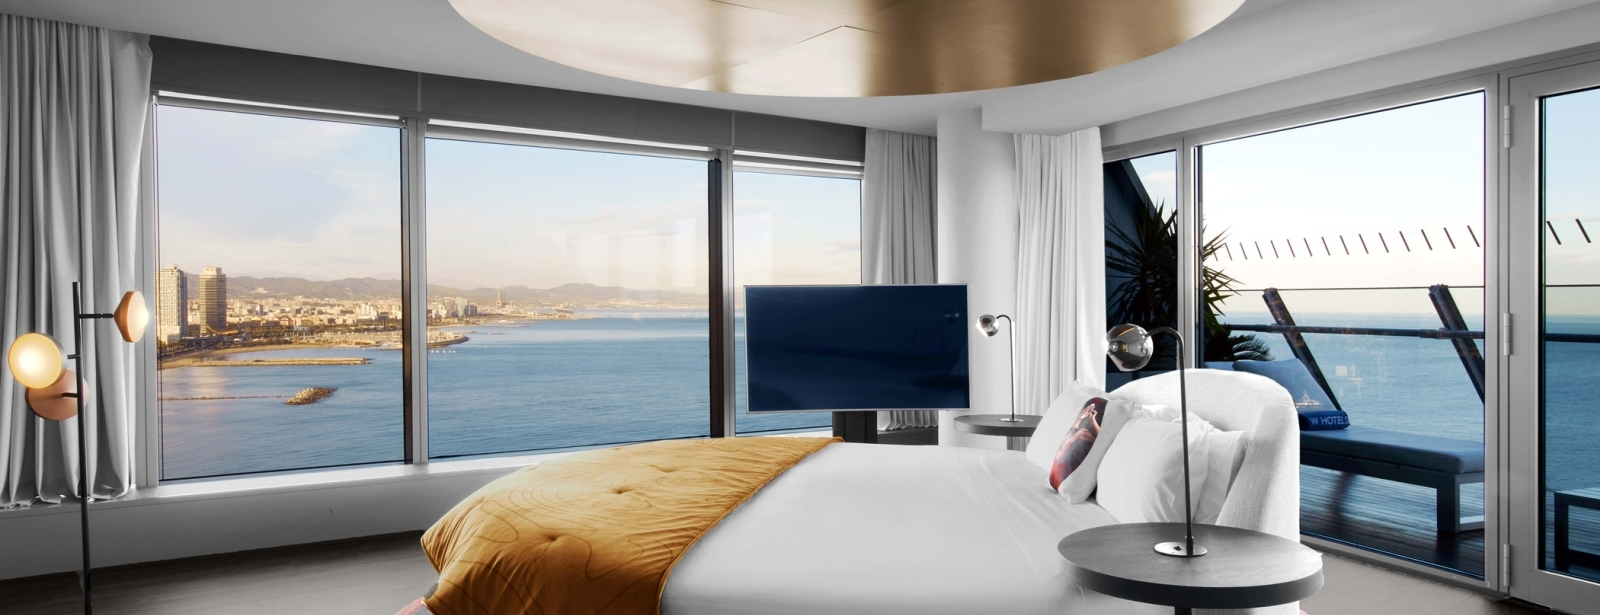 Stay in the WOW Suite at hotel W Barcelona